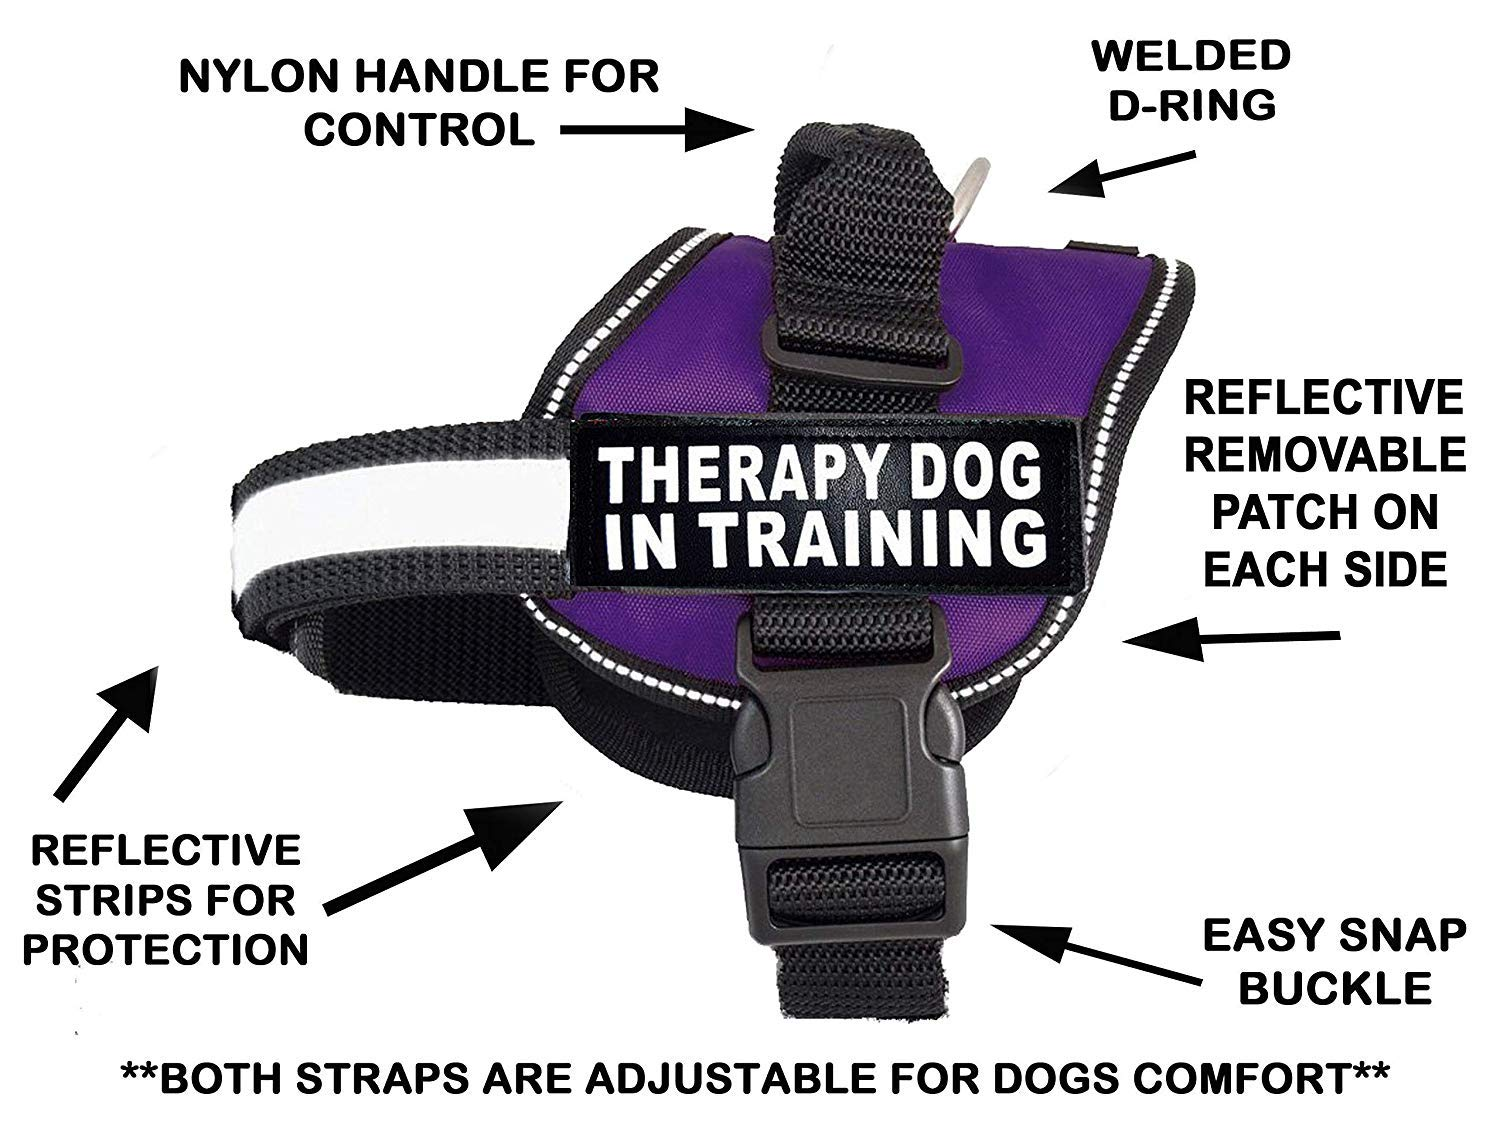 Therapy Dog in Training Nylon Dog Vest Harness. Purchase Comes with 2 Reflective Therapy Dog in Training Velcro pathces. Please Measure Your Dog Before Ordering